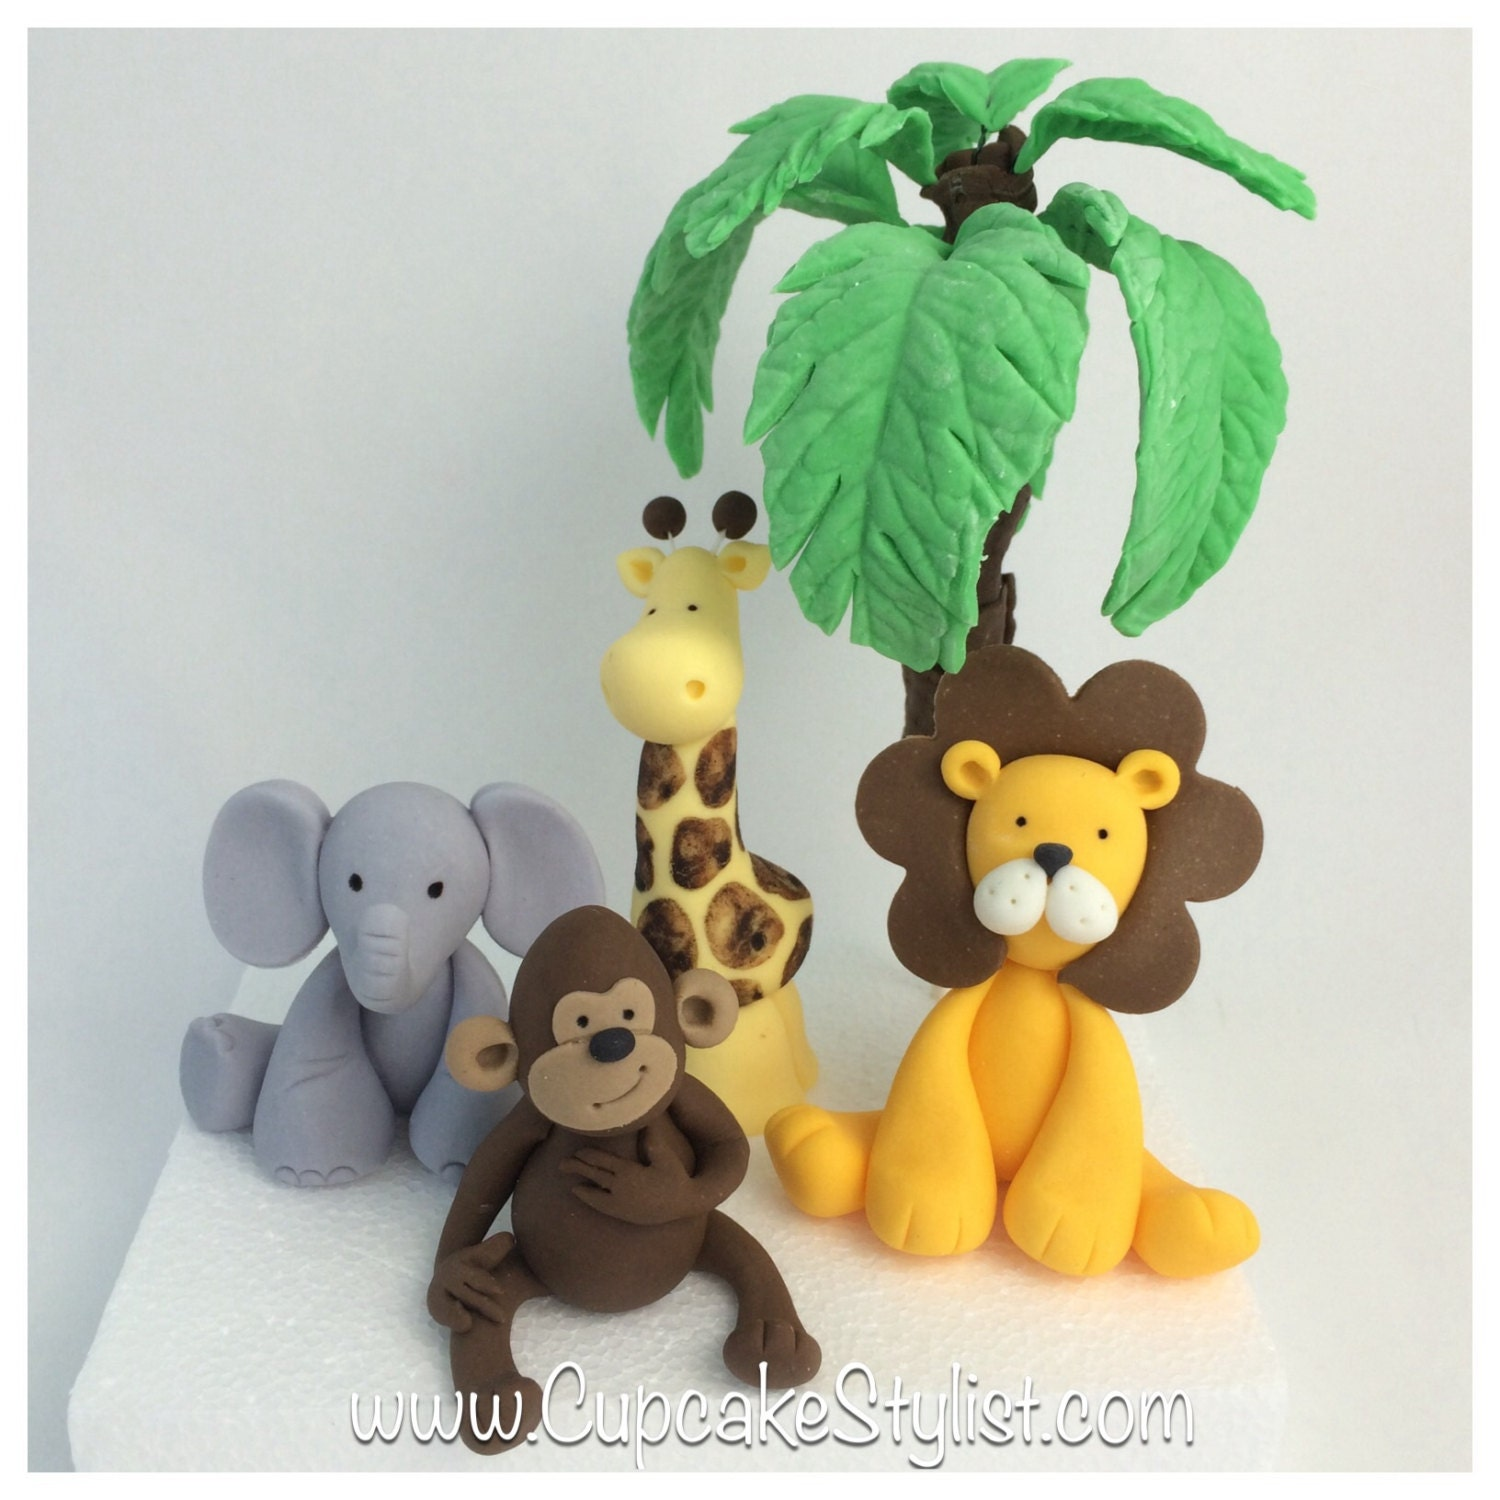 Gumpaste Safari animal and palm tree cake topper set by